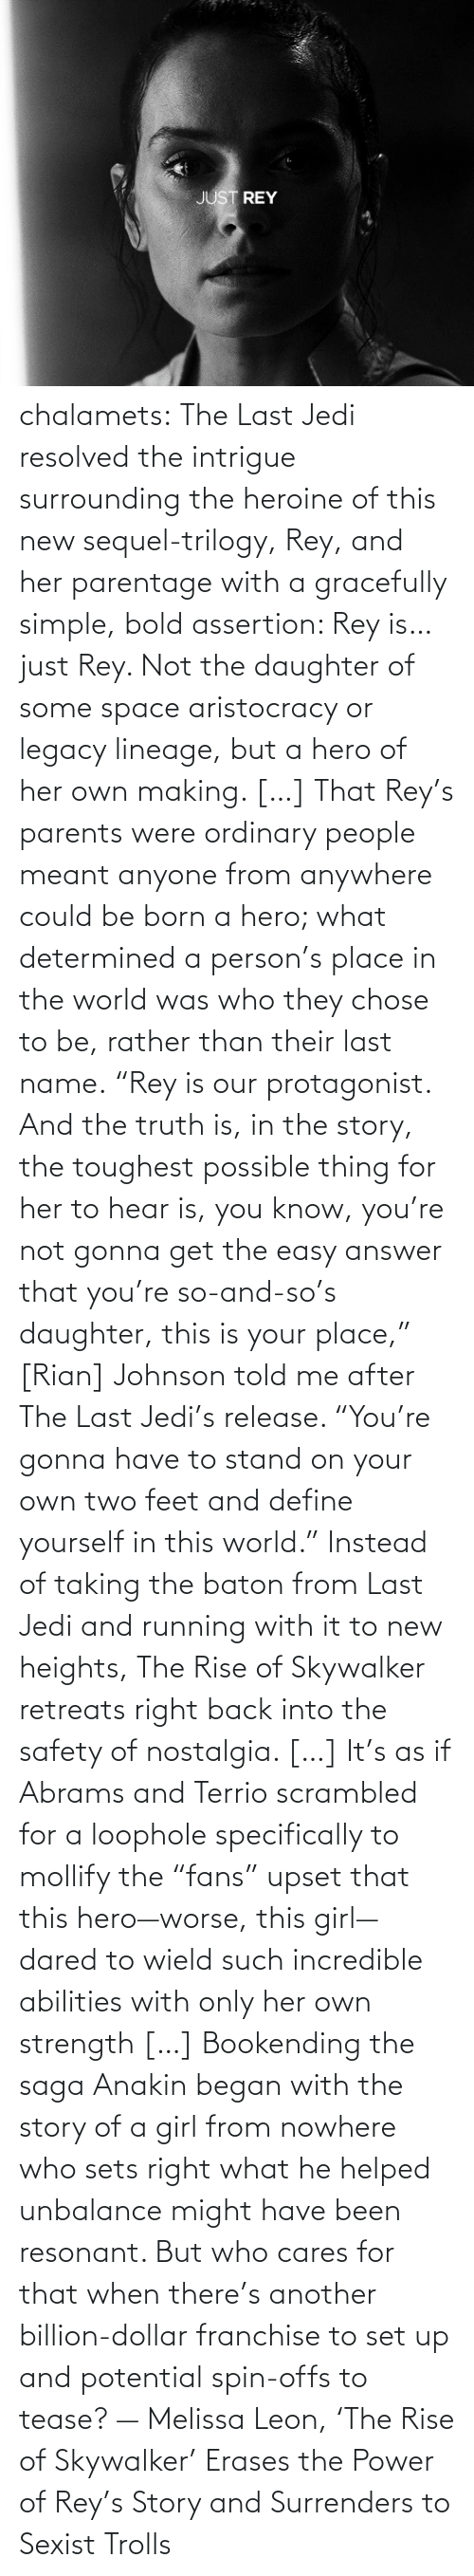 "Yourself: chalamets:  The Last Jedi resolved the intrigue surrounding the heroine of this new sequel-trilogy, Rey, and her parentage with a gracefully simple, bold assertion: Rey is… just Rey. Not the daughter of some space aristocracy or legacy lineage, but a hero of her own making. […] That Rey's parents were ordinary people meant anyone from anywhere could be born a hero; what determined a person's place in the world was who they chose to be, rather than their last name. ""Rey is our protagonist. And the truth is, in the story, the toughest possible thing for her to hear is, you know, you're not gonna get the easy answer that you're so-and-so's daughter, this is your place,"" [Rian] Johnson told me after The Last Jedi's release. ""You're gonna have to stand on your own two feet and define yourself in this world."" Instead of taking the baton from Last Jedi and running with it to new heights, The Rise of Skywalker retreats right back into the safety of nostalgia. […] It's as if Abrams and Terrio scrambled for a loophole specifically to mollify the ""fans"" upset that this hero—worse, this girl—dared to wield such incredible abilities with only her own strength […] Bookending the saga Anakin began with the story of a girl from nowhere who sets right what he helped unbalance might have been resonant. But who cares for that when there's another billion-dollar franchise to set up and potential spin-offs to tease? — Melissa Leon, 'The Rise of Skywalker' Erases the Power of Rey's Story and Surrenders to Sexist Trolls"